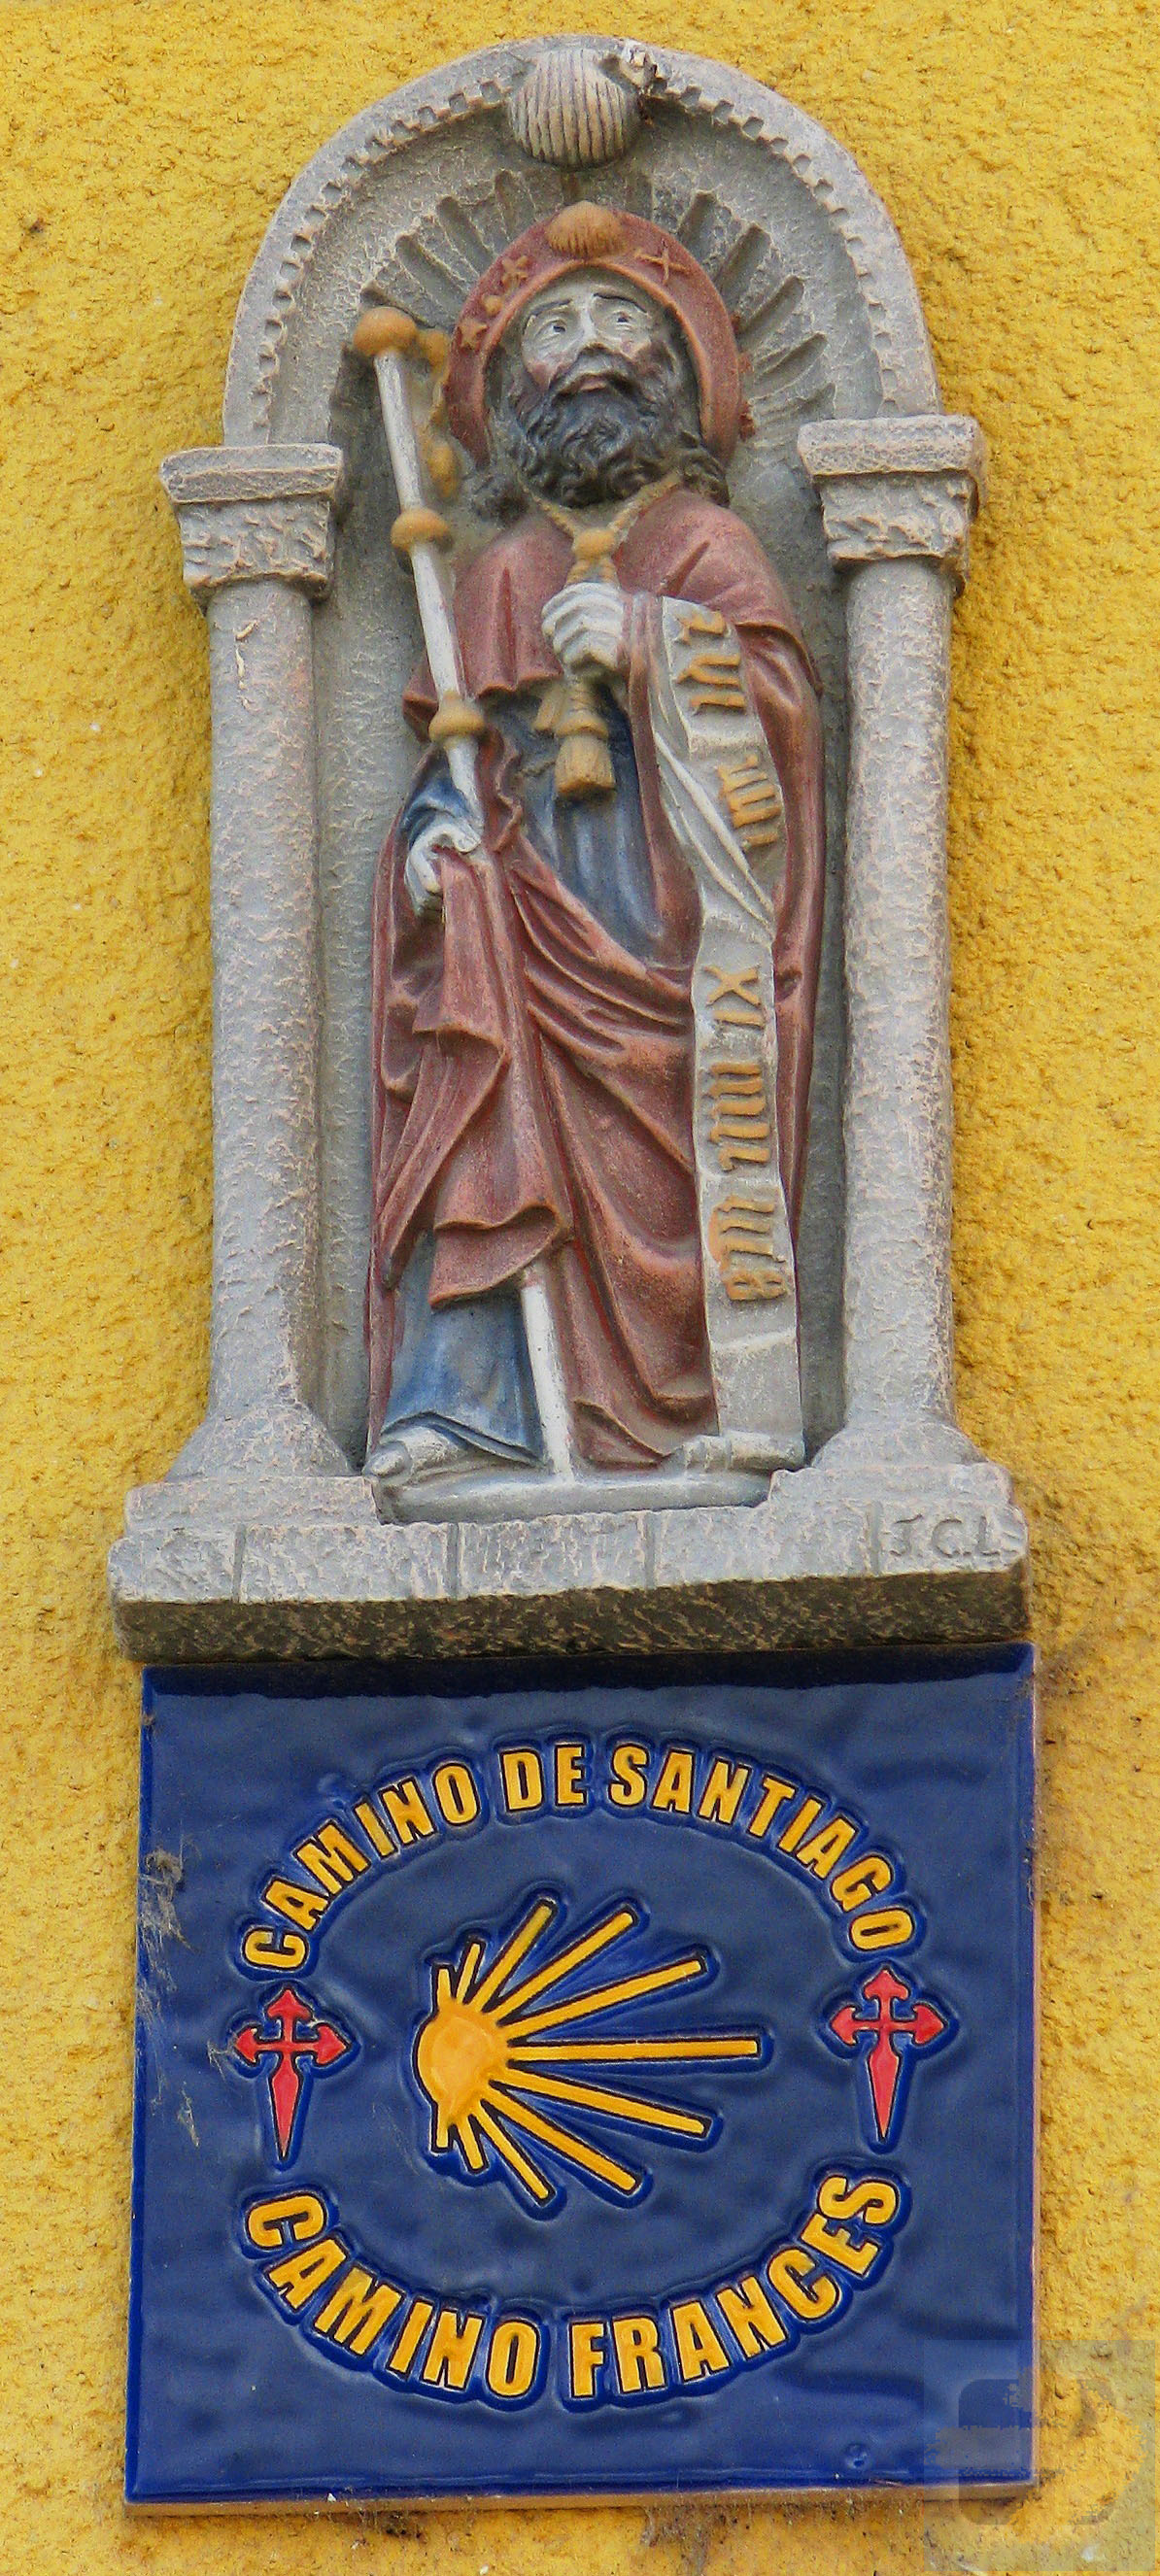 The very small statue on the facade of the house No. 63, Fuente Nuevas